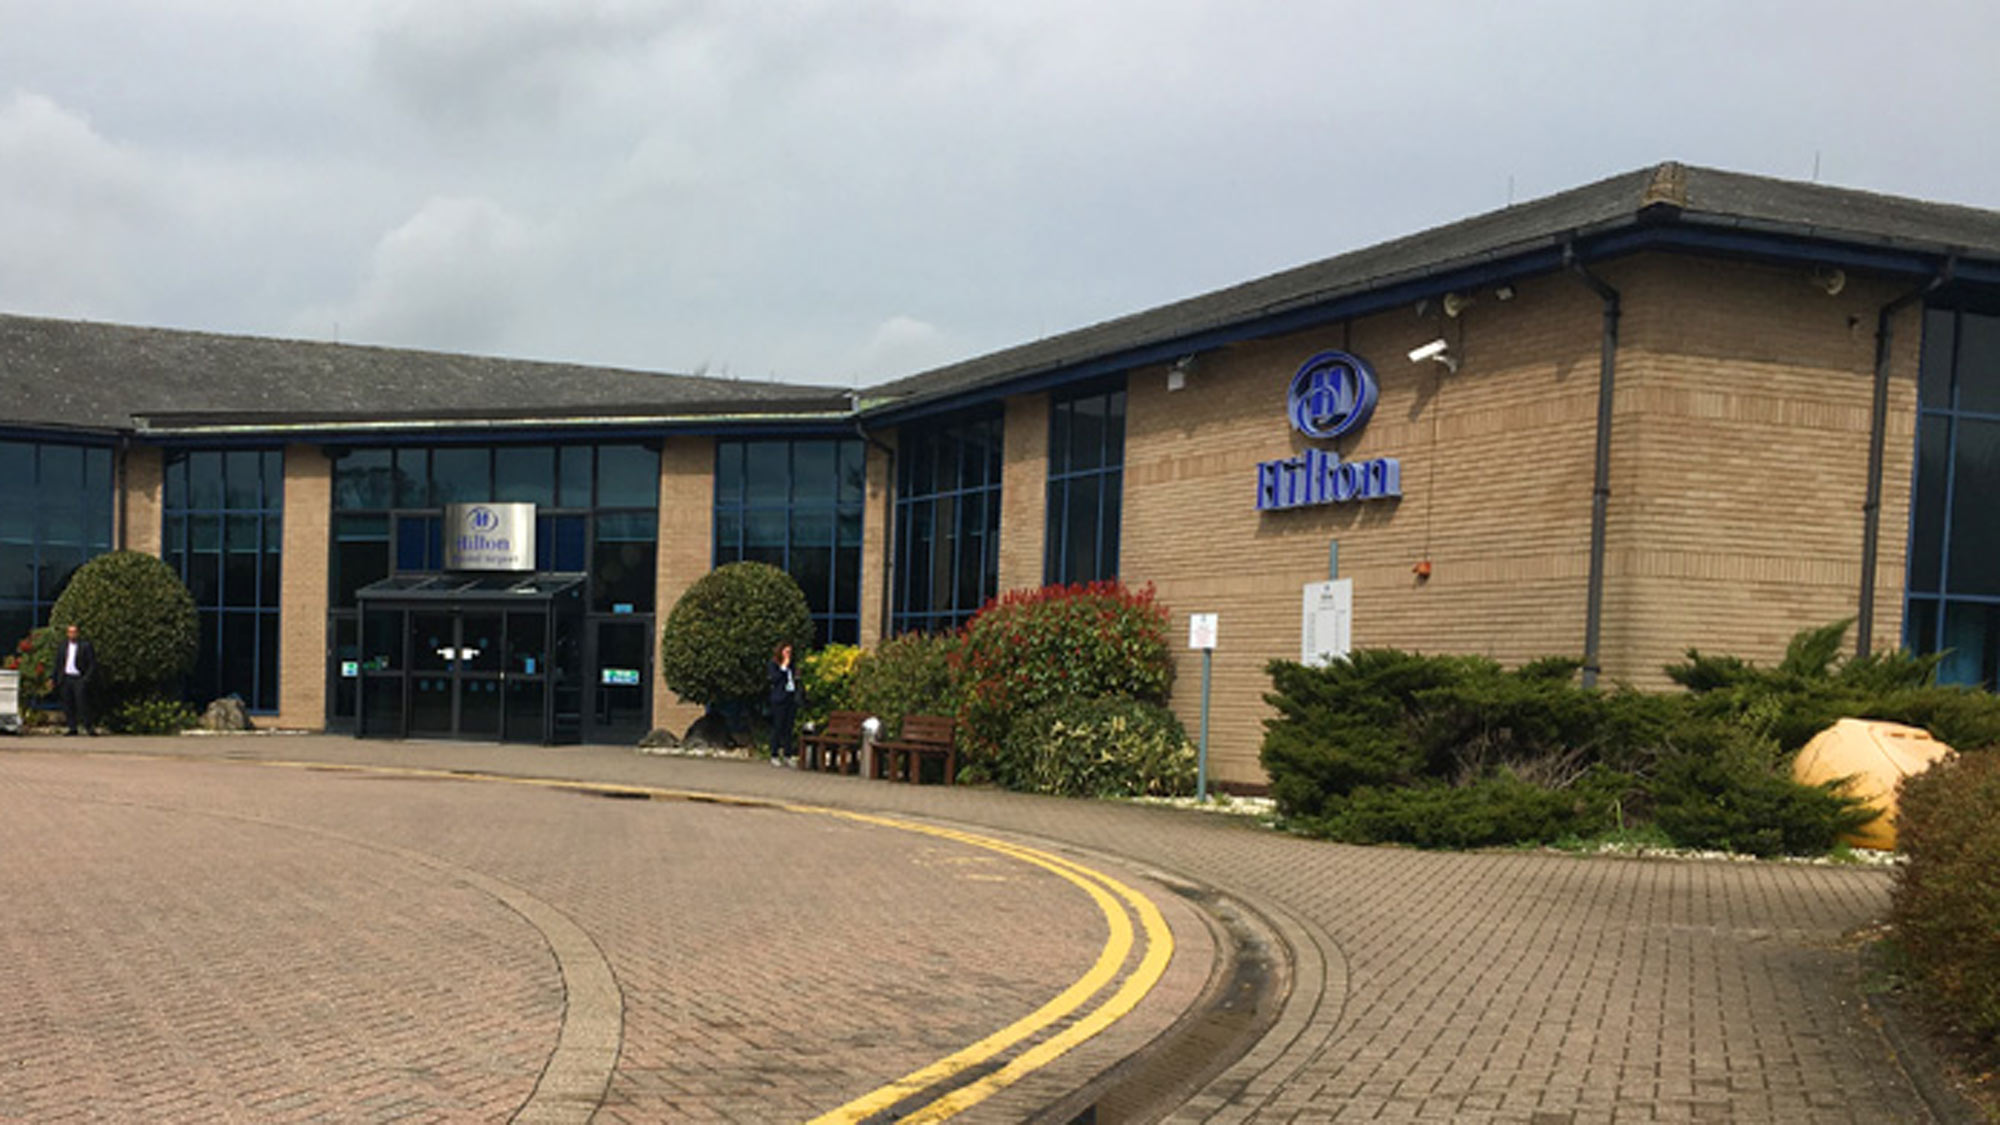 Stansted Airport Hotel And Long Stay Parking